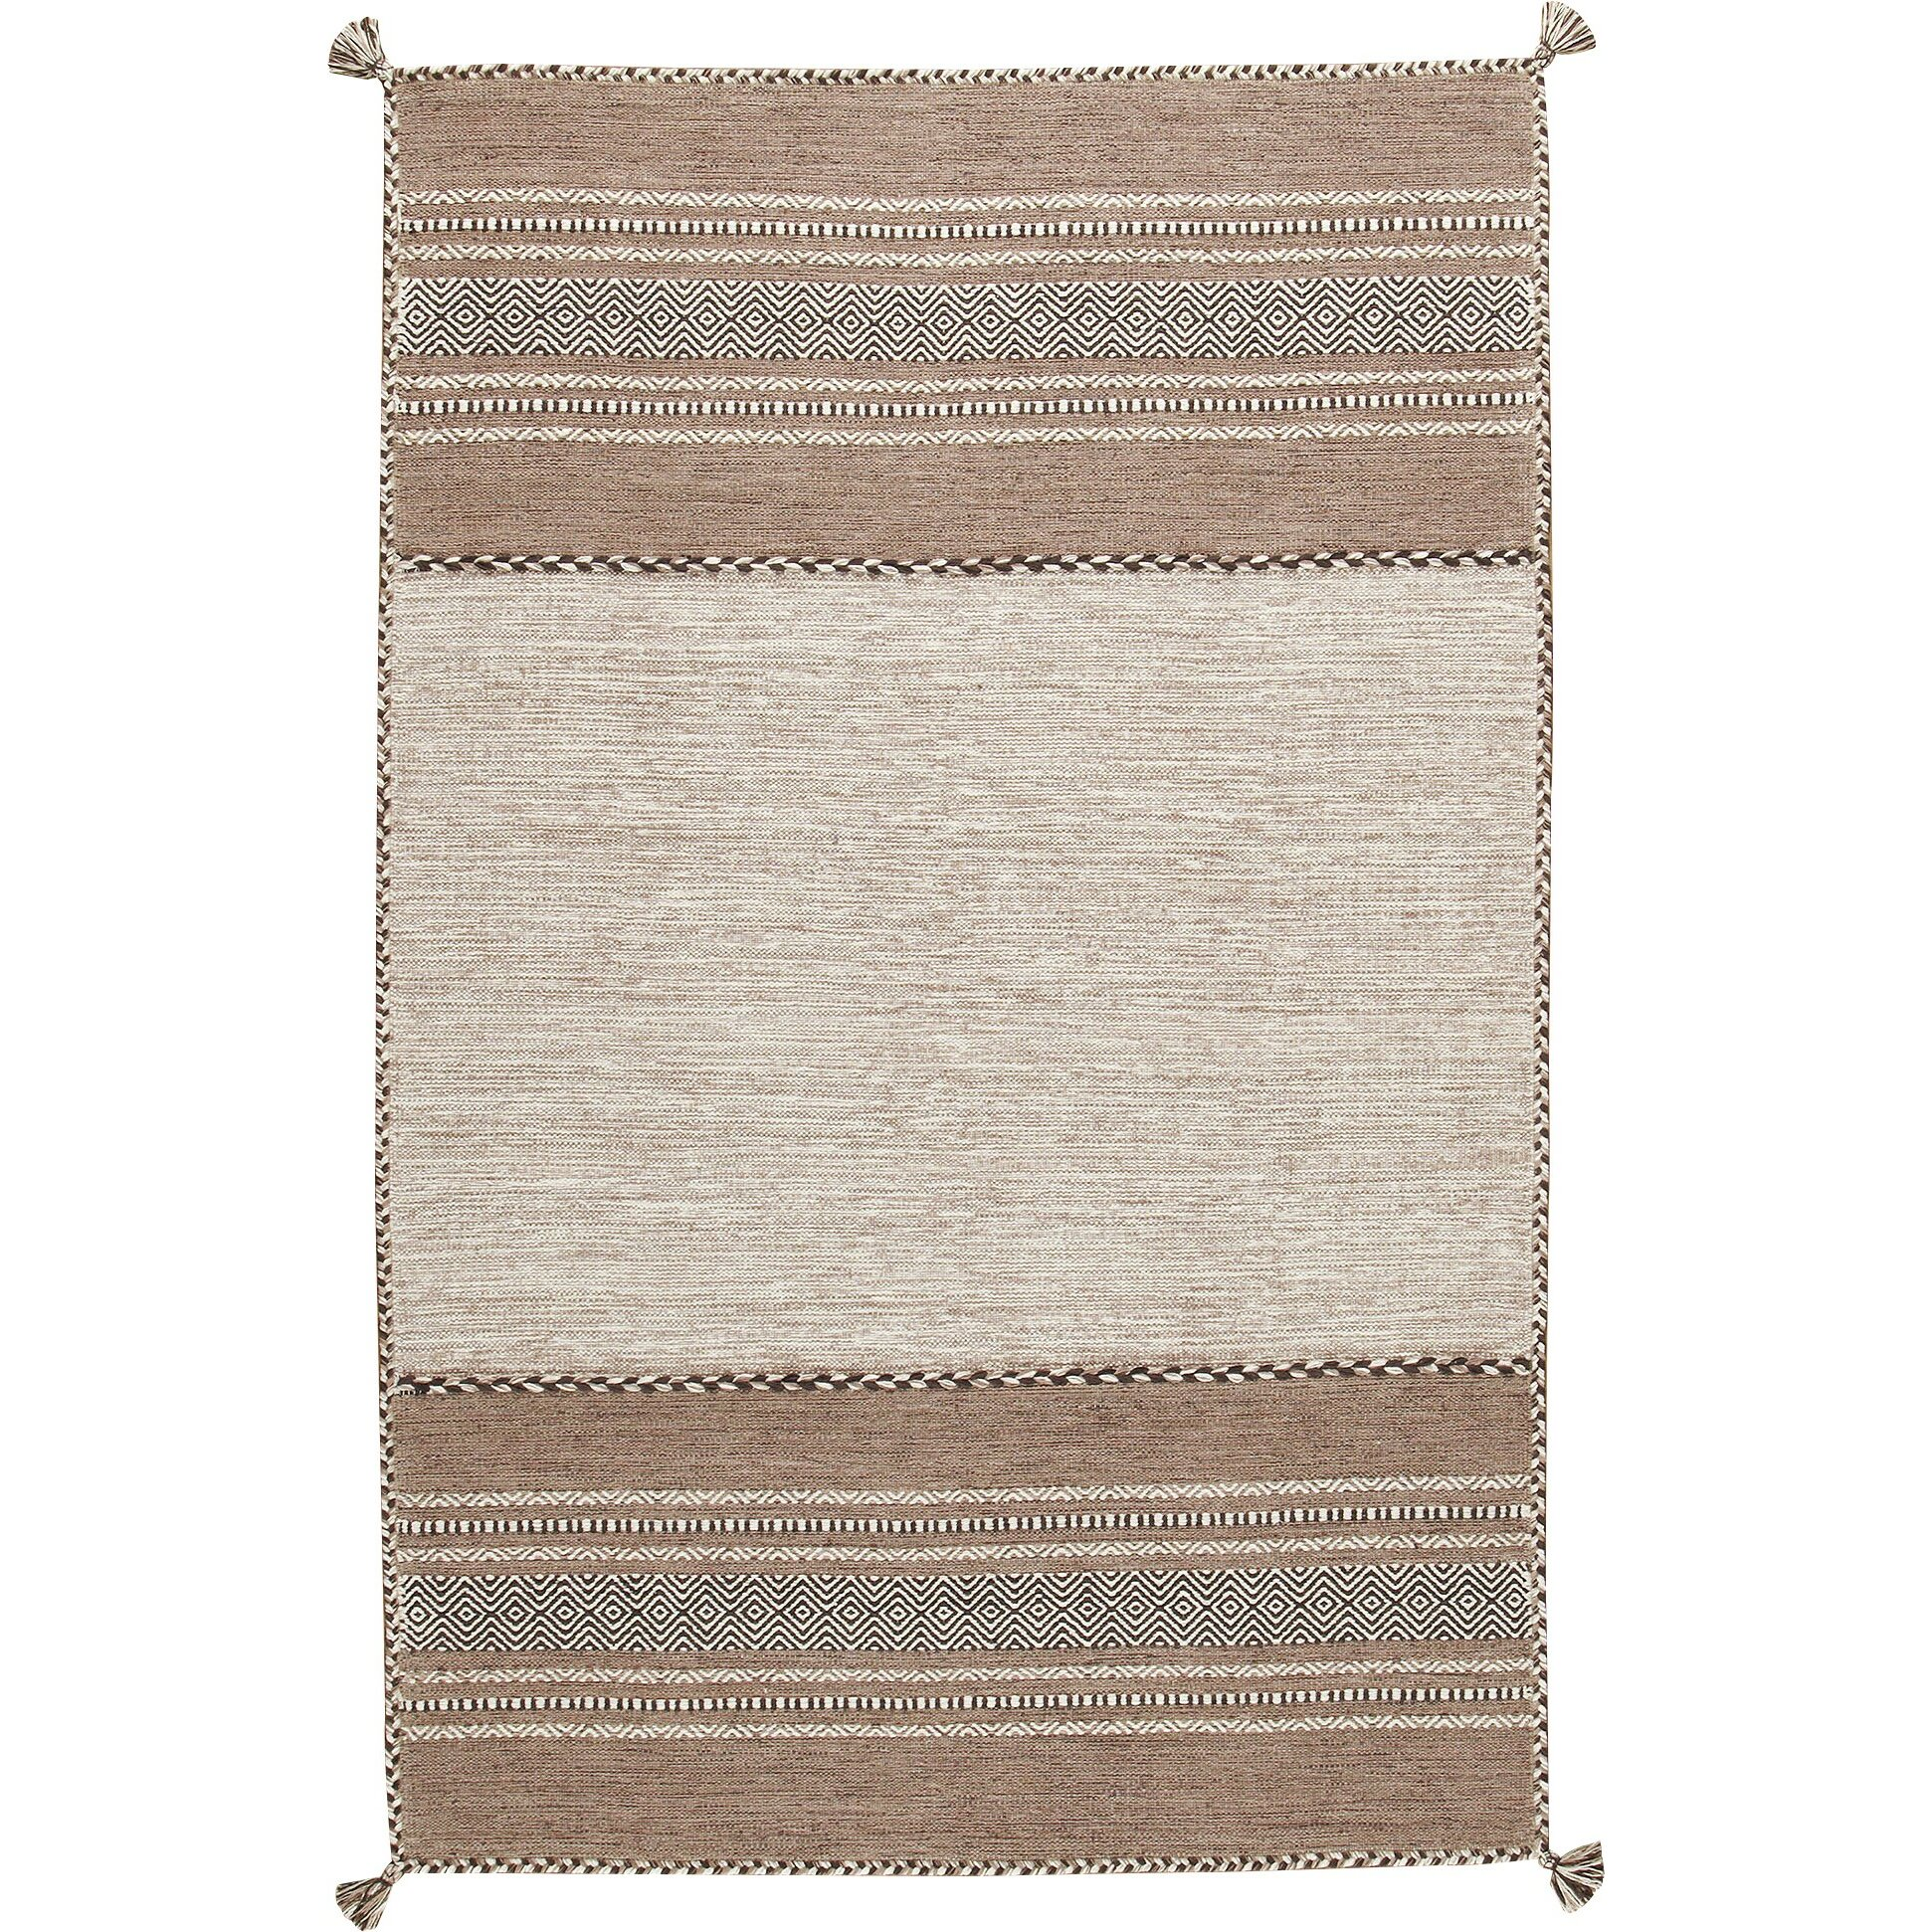 rugs area rugs runner area rugs dwellstudio sku dwl12074